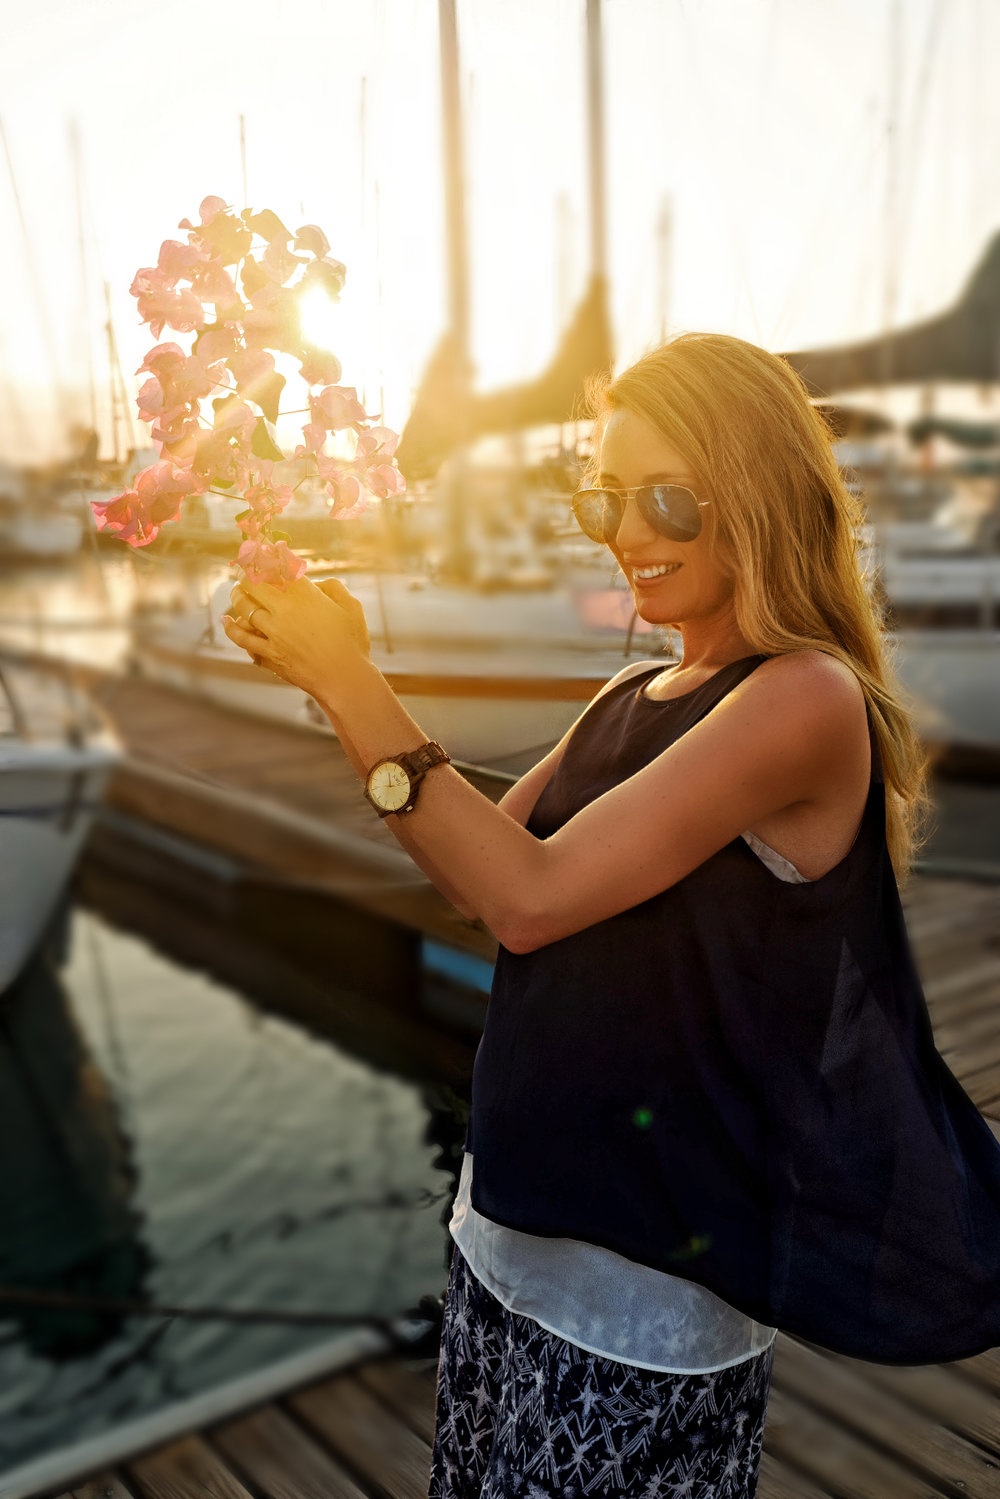 Water Wanderer is a fashion, lifestyle and travel blog to inspire creativity.